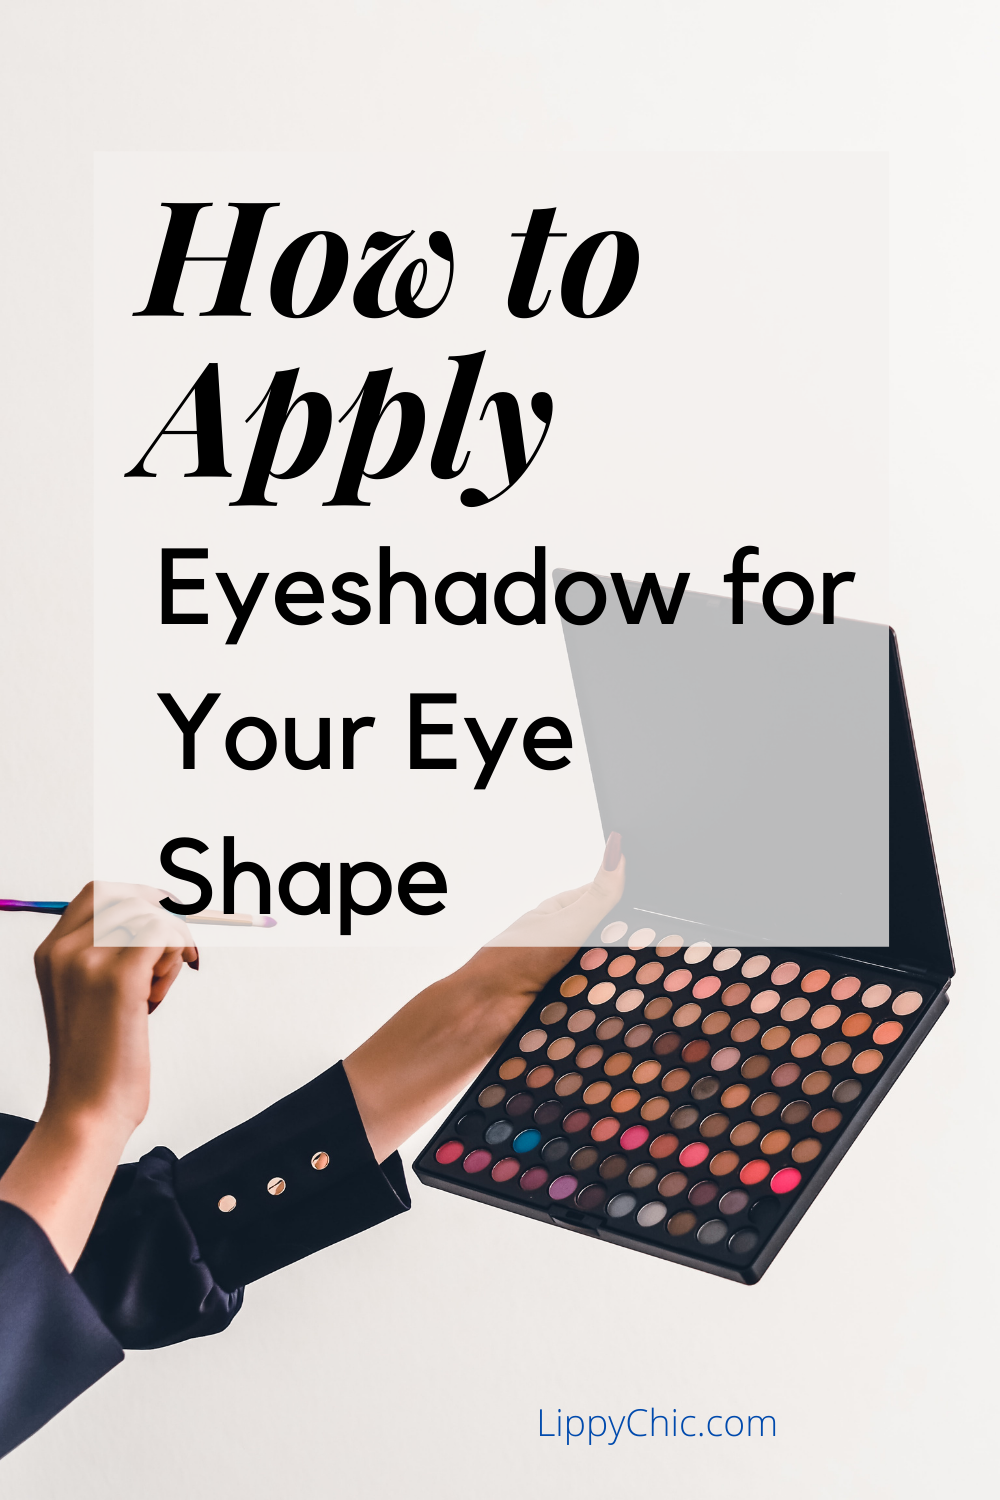 How to apply eyeshadow for your eye shape